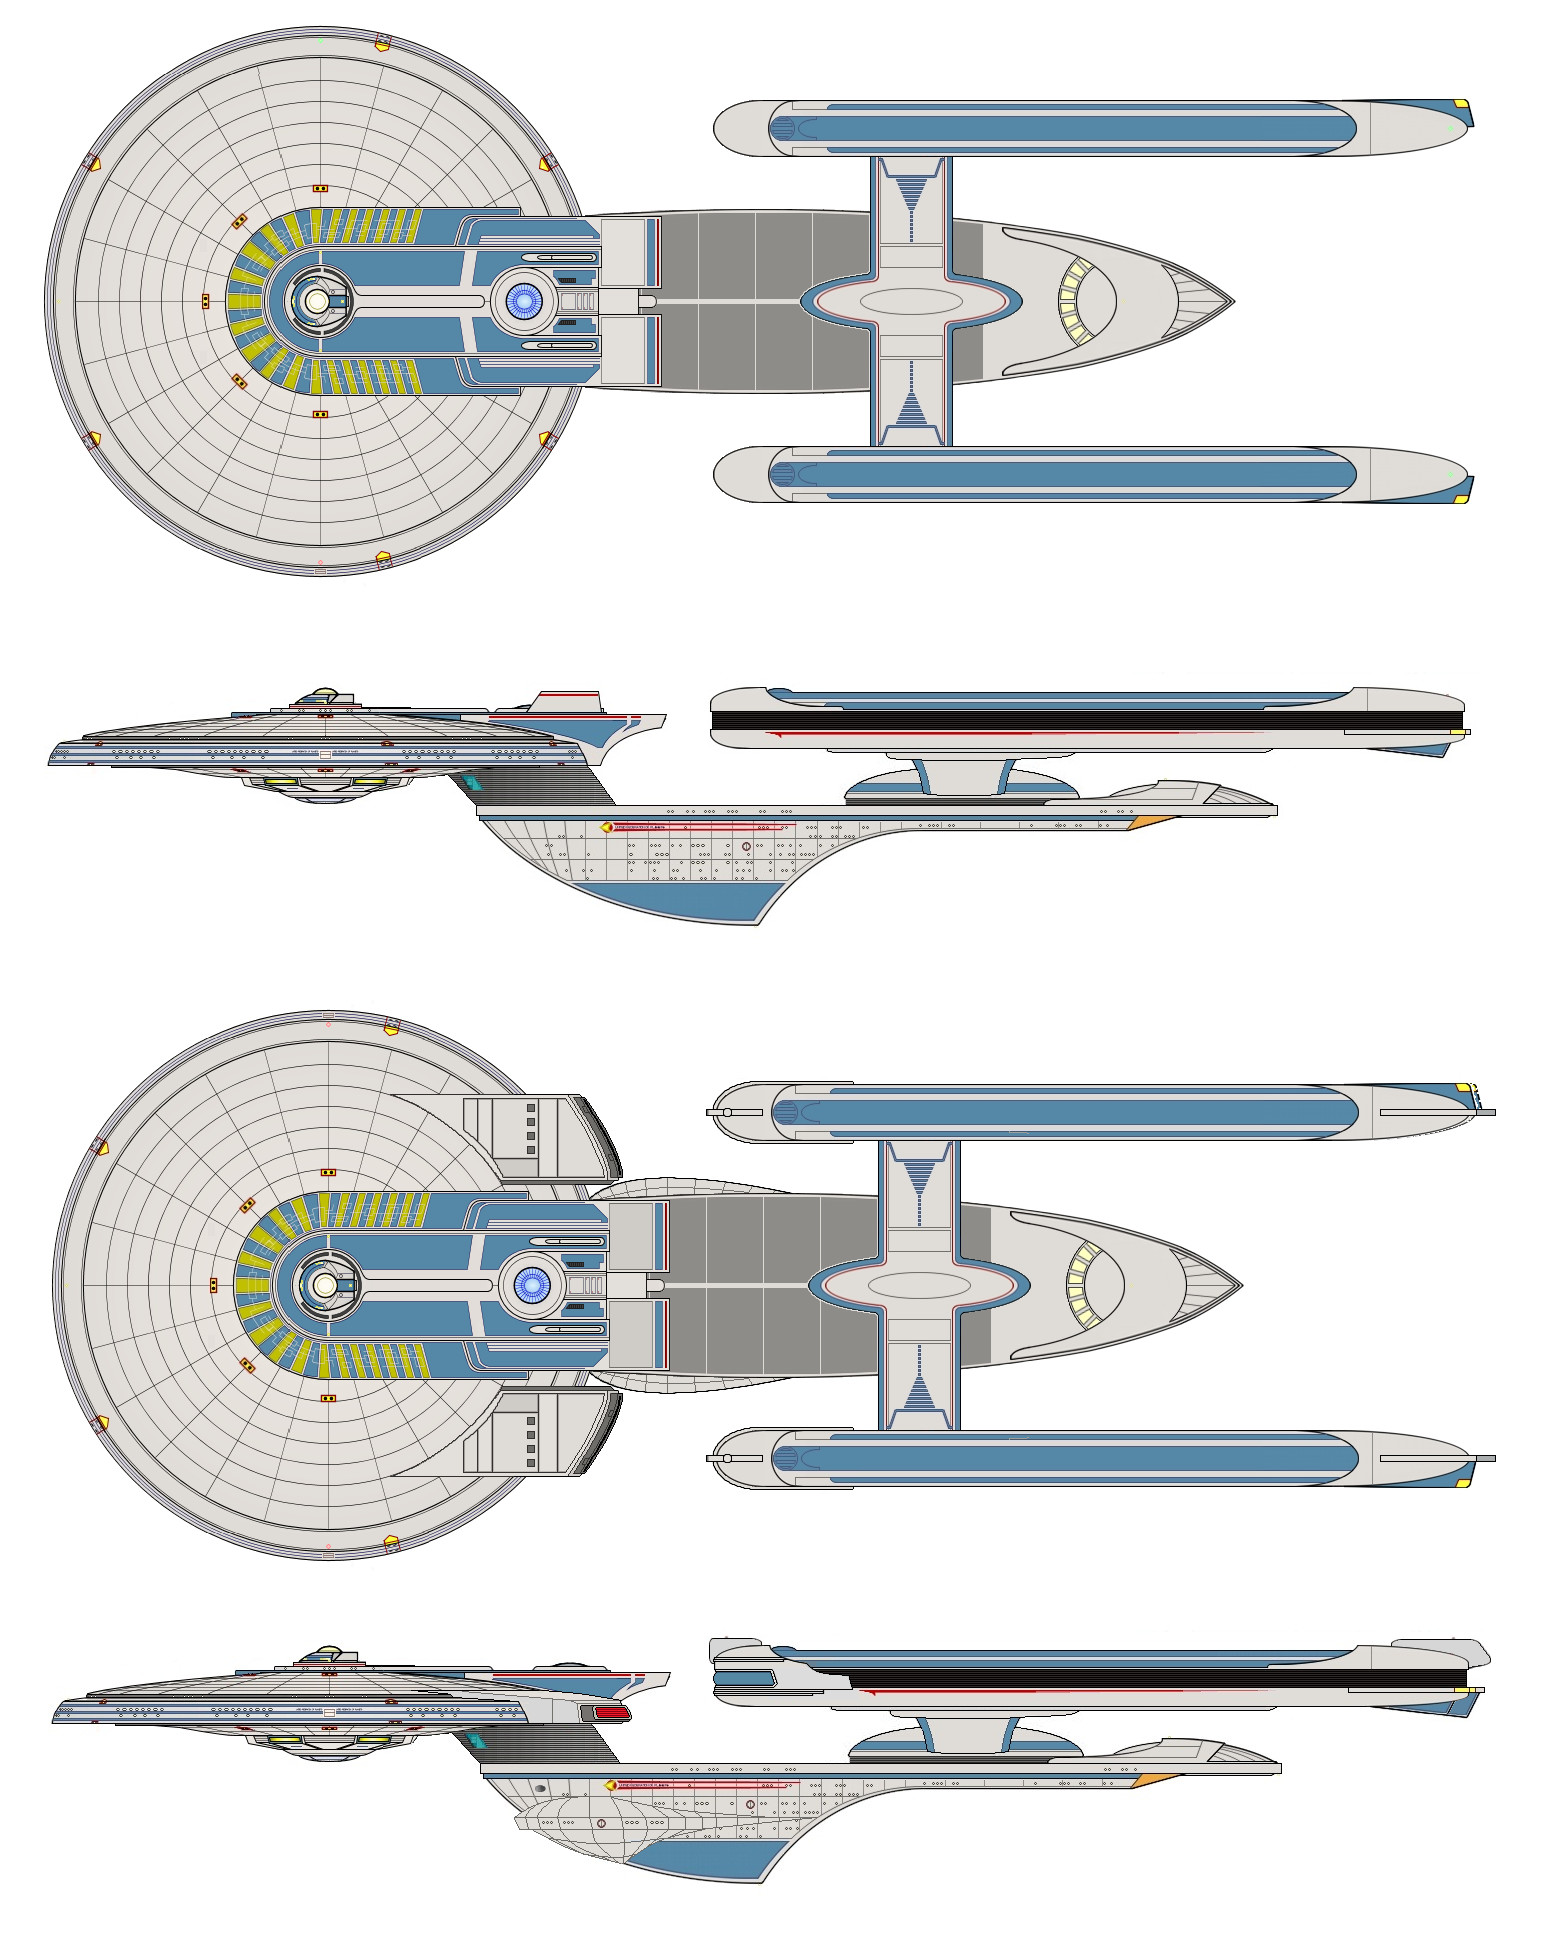 Excelsior Class Starship And Refit 386056262 on Star Trek Starship Parts